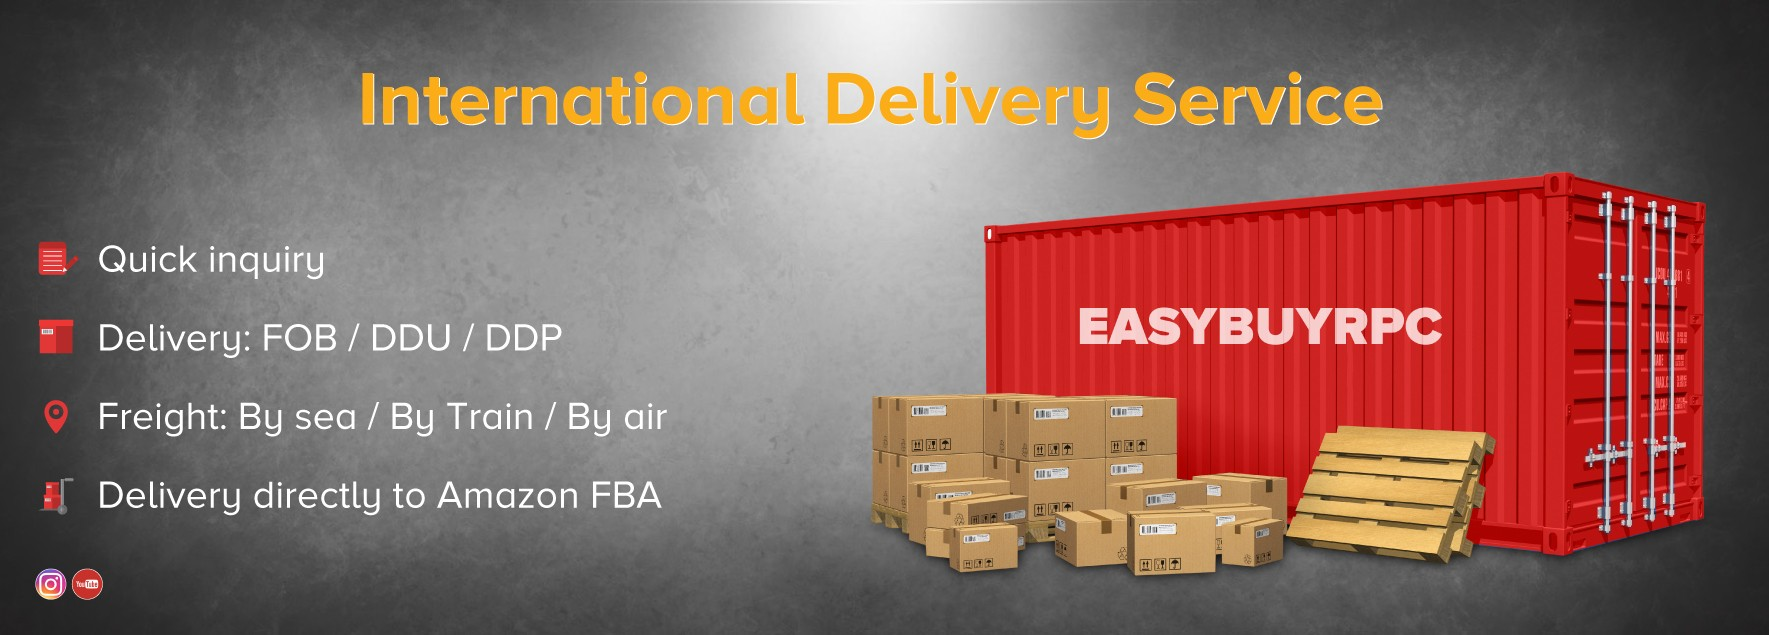 Easybuyrpc international delivery